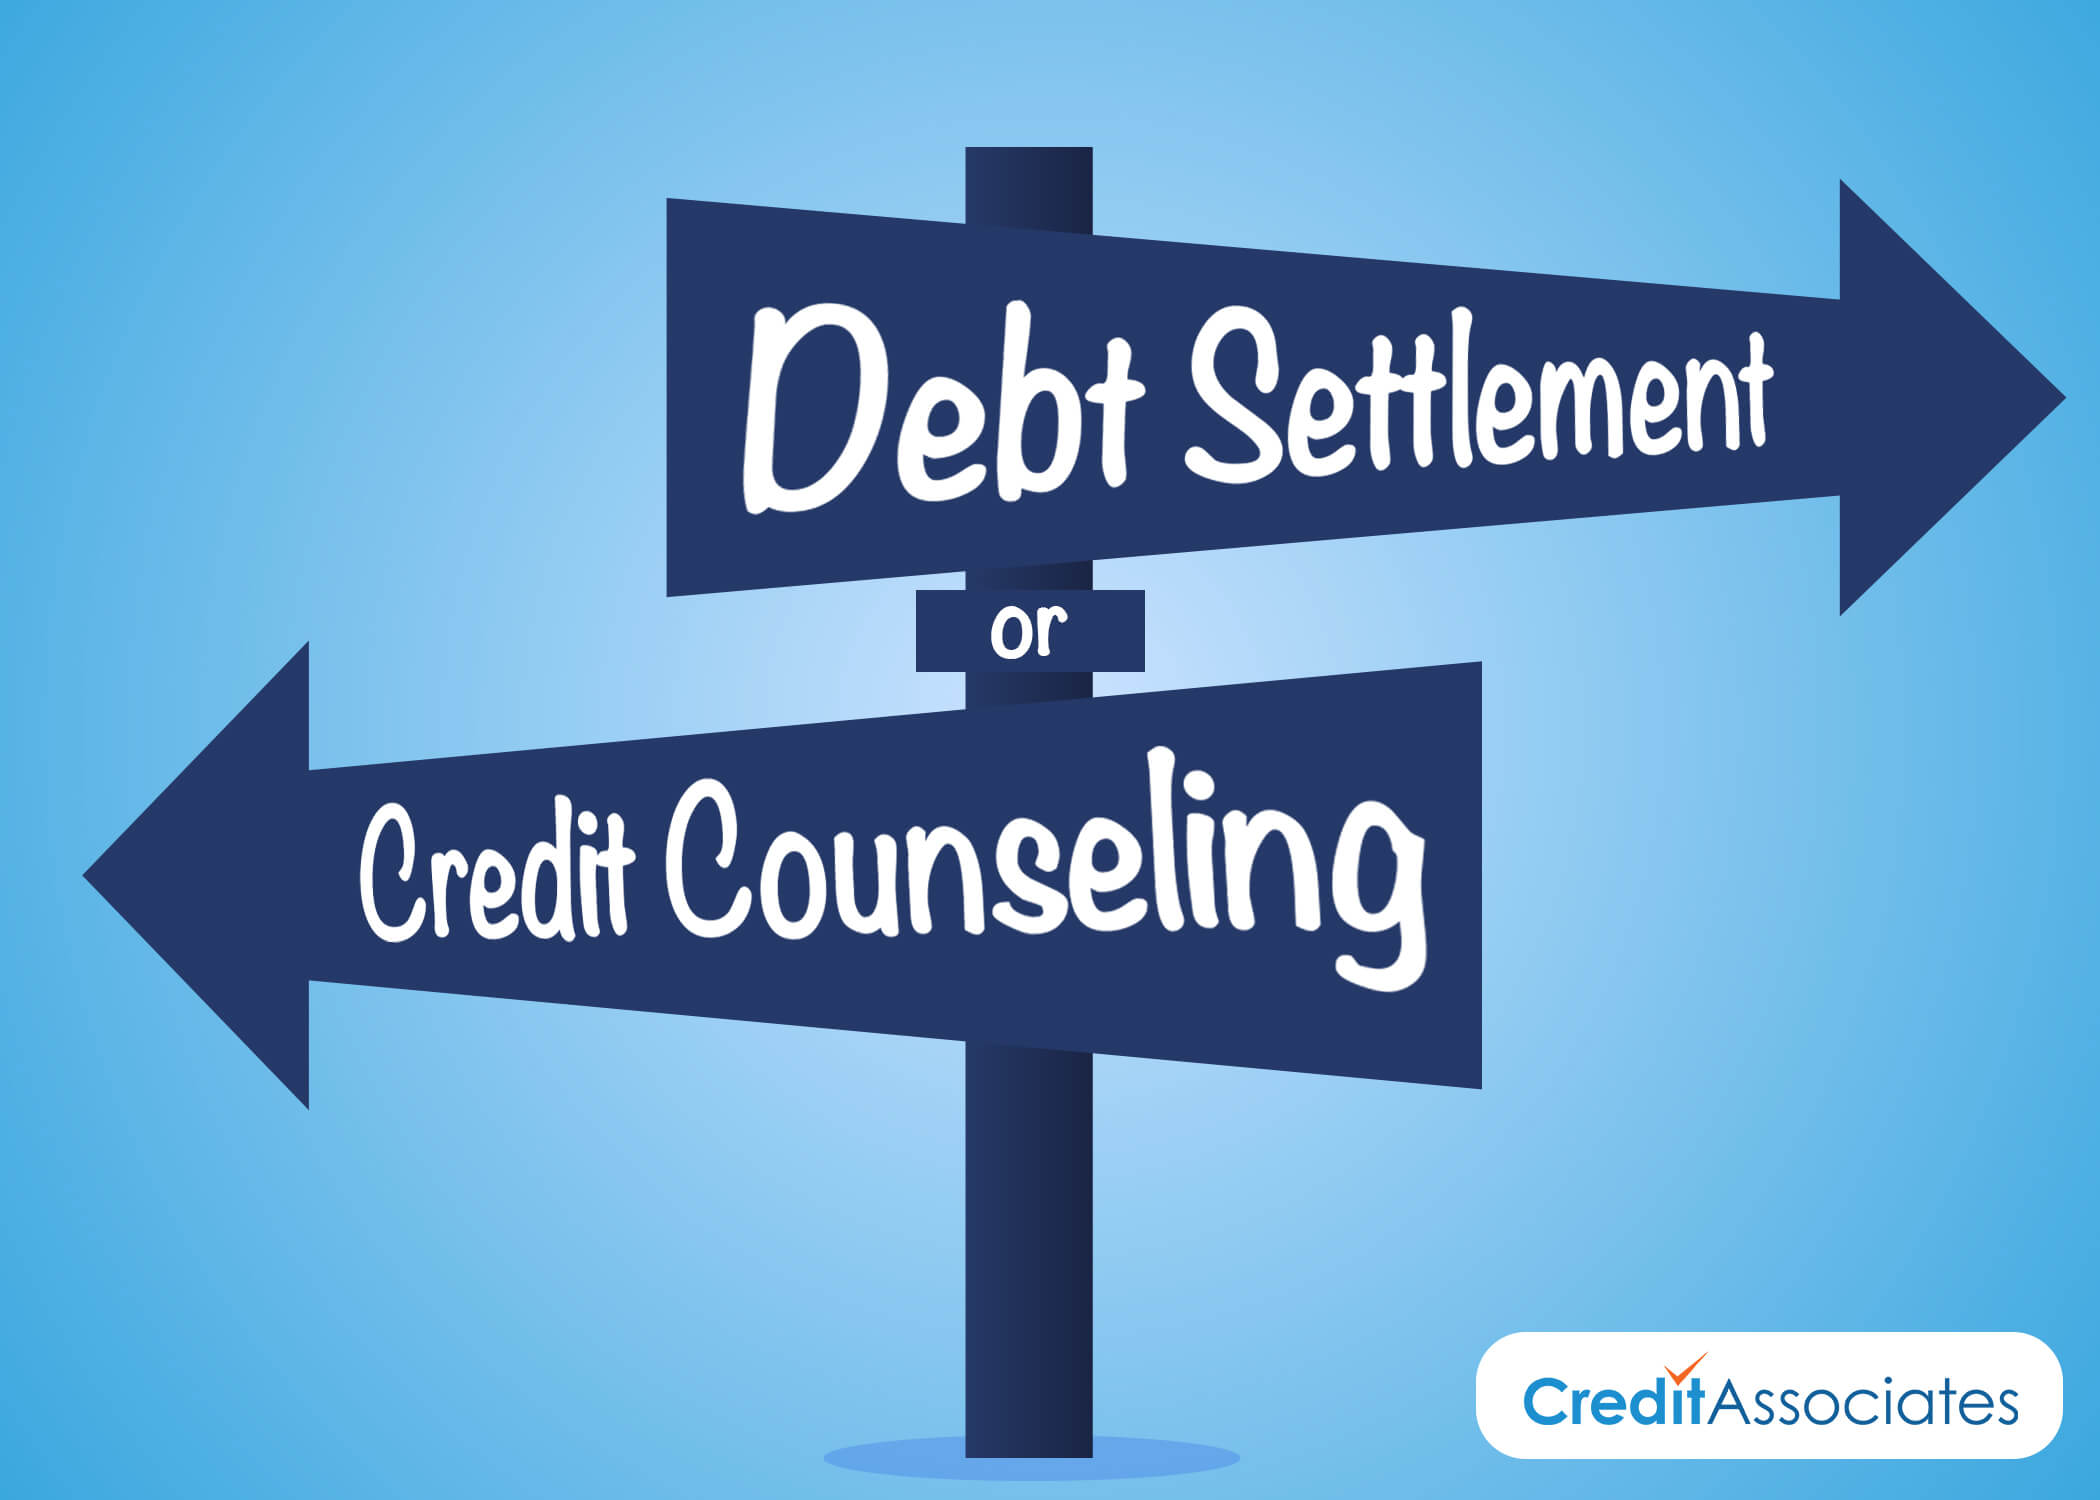 Credit Counseling vs. Debt Settlement: Which is Better for You?